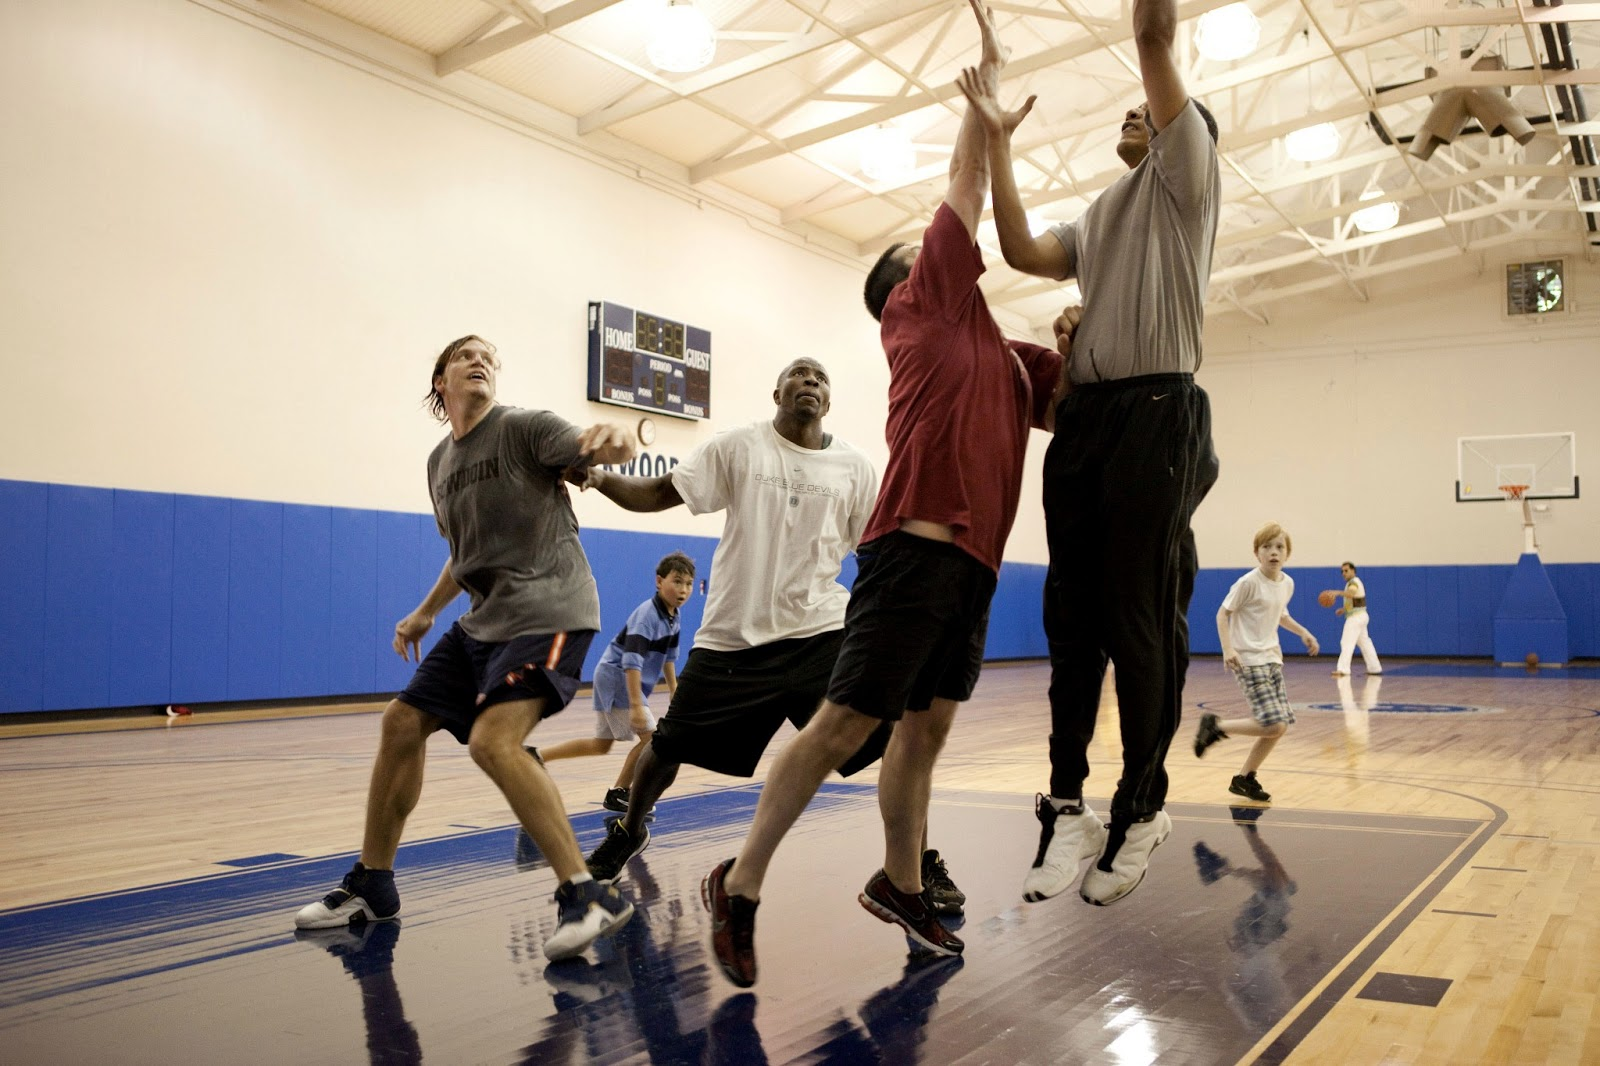 Obama Entertainment: Barack Obama Playing Basketball